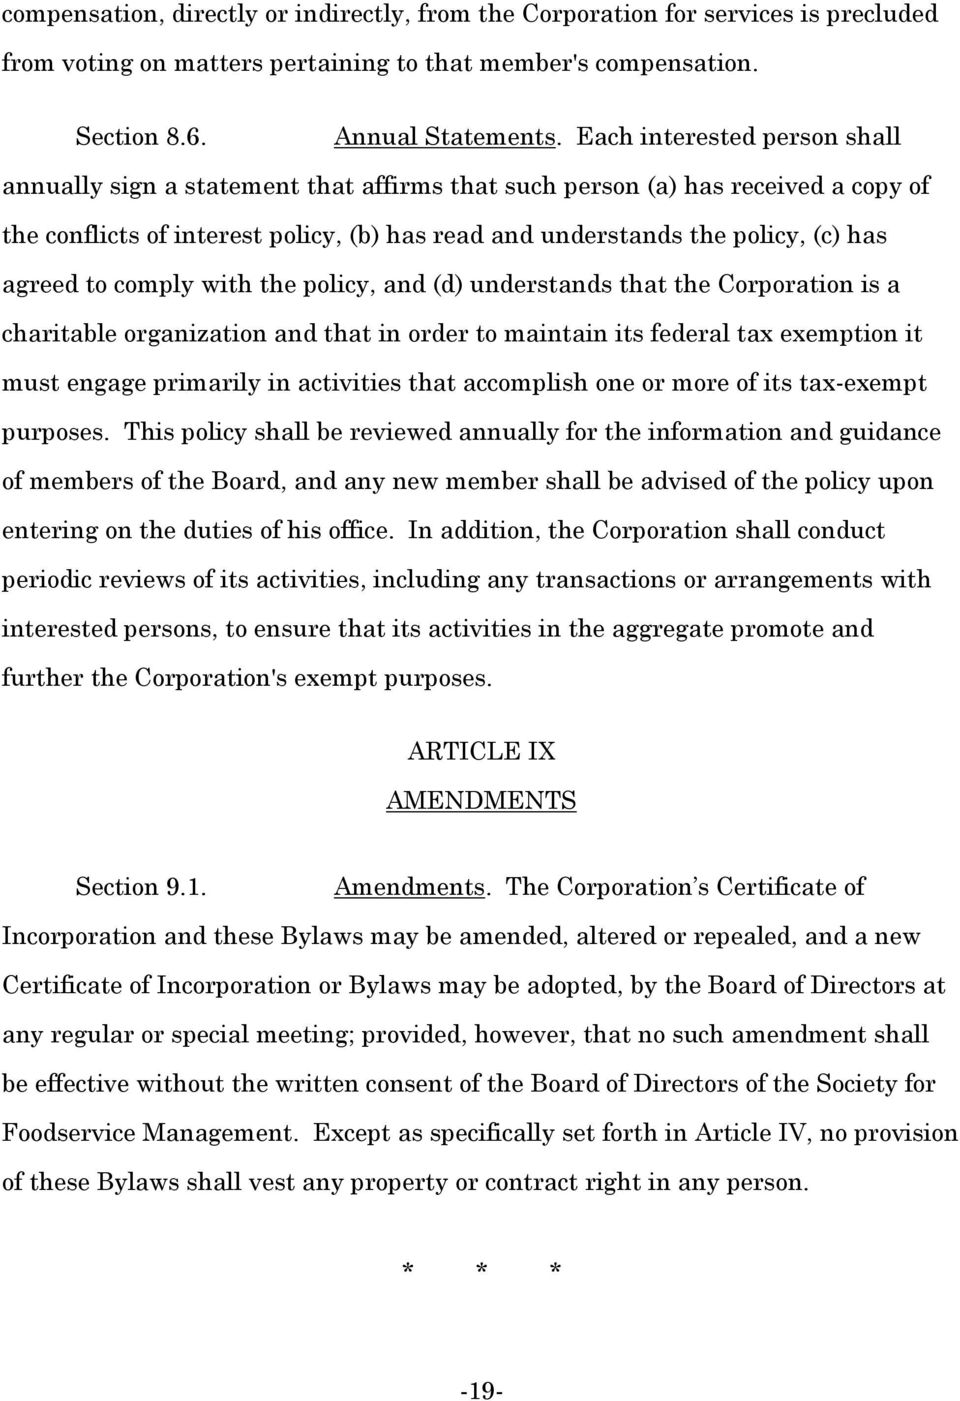 agreed to comply with the policy, and (d) understands that the Corporation is a charitable organization and that in order to maintain its federal tax exemption it must engage primarily in activities